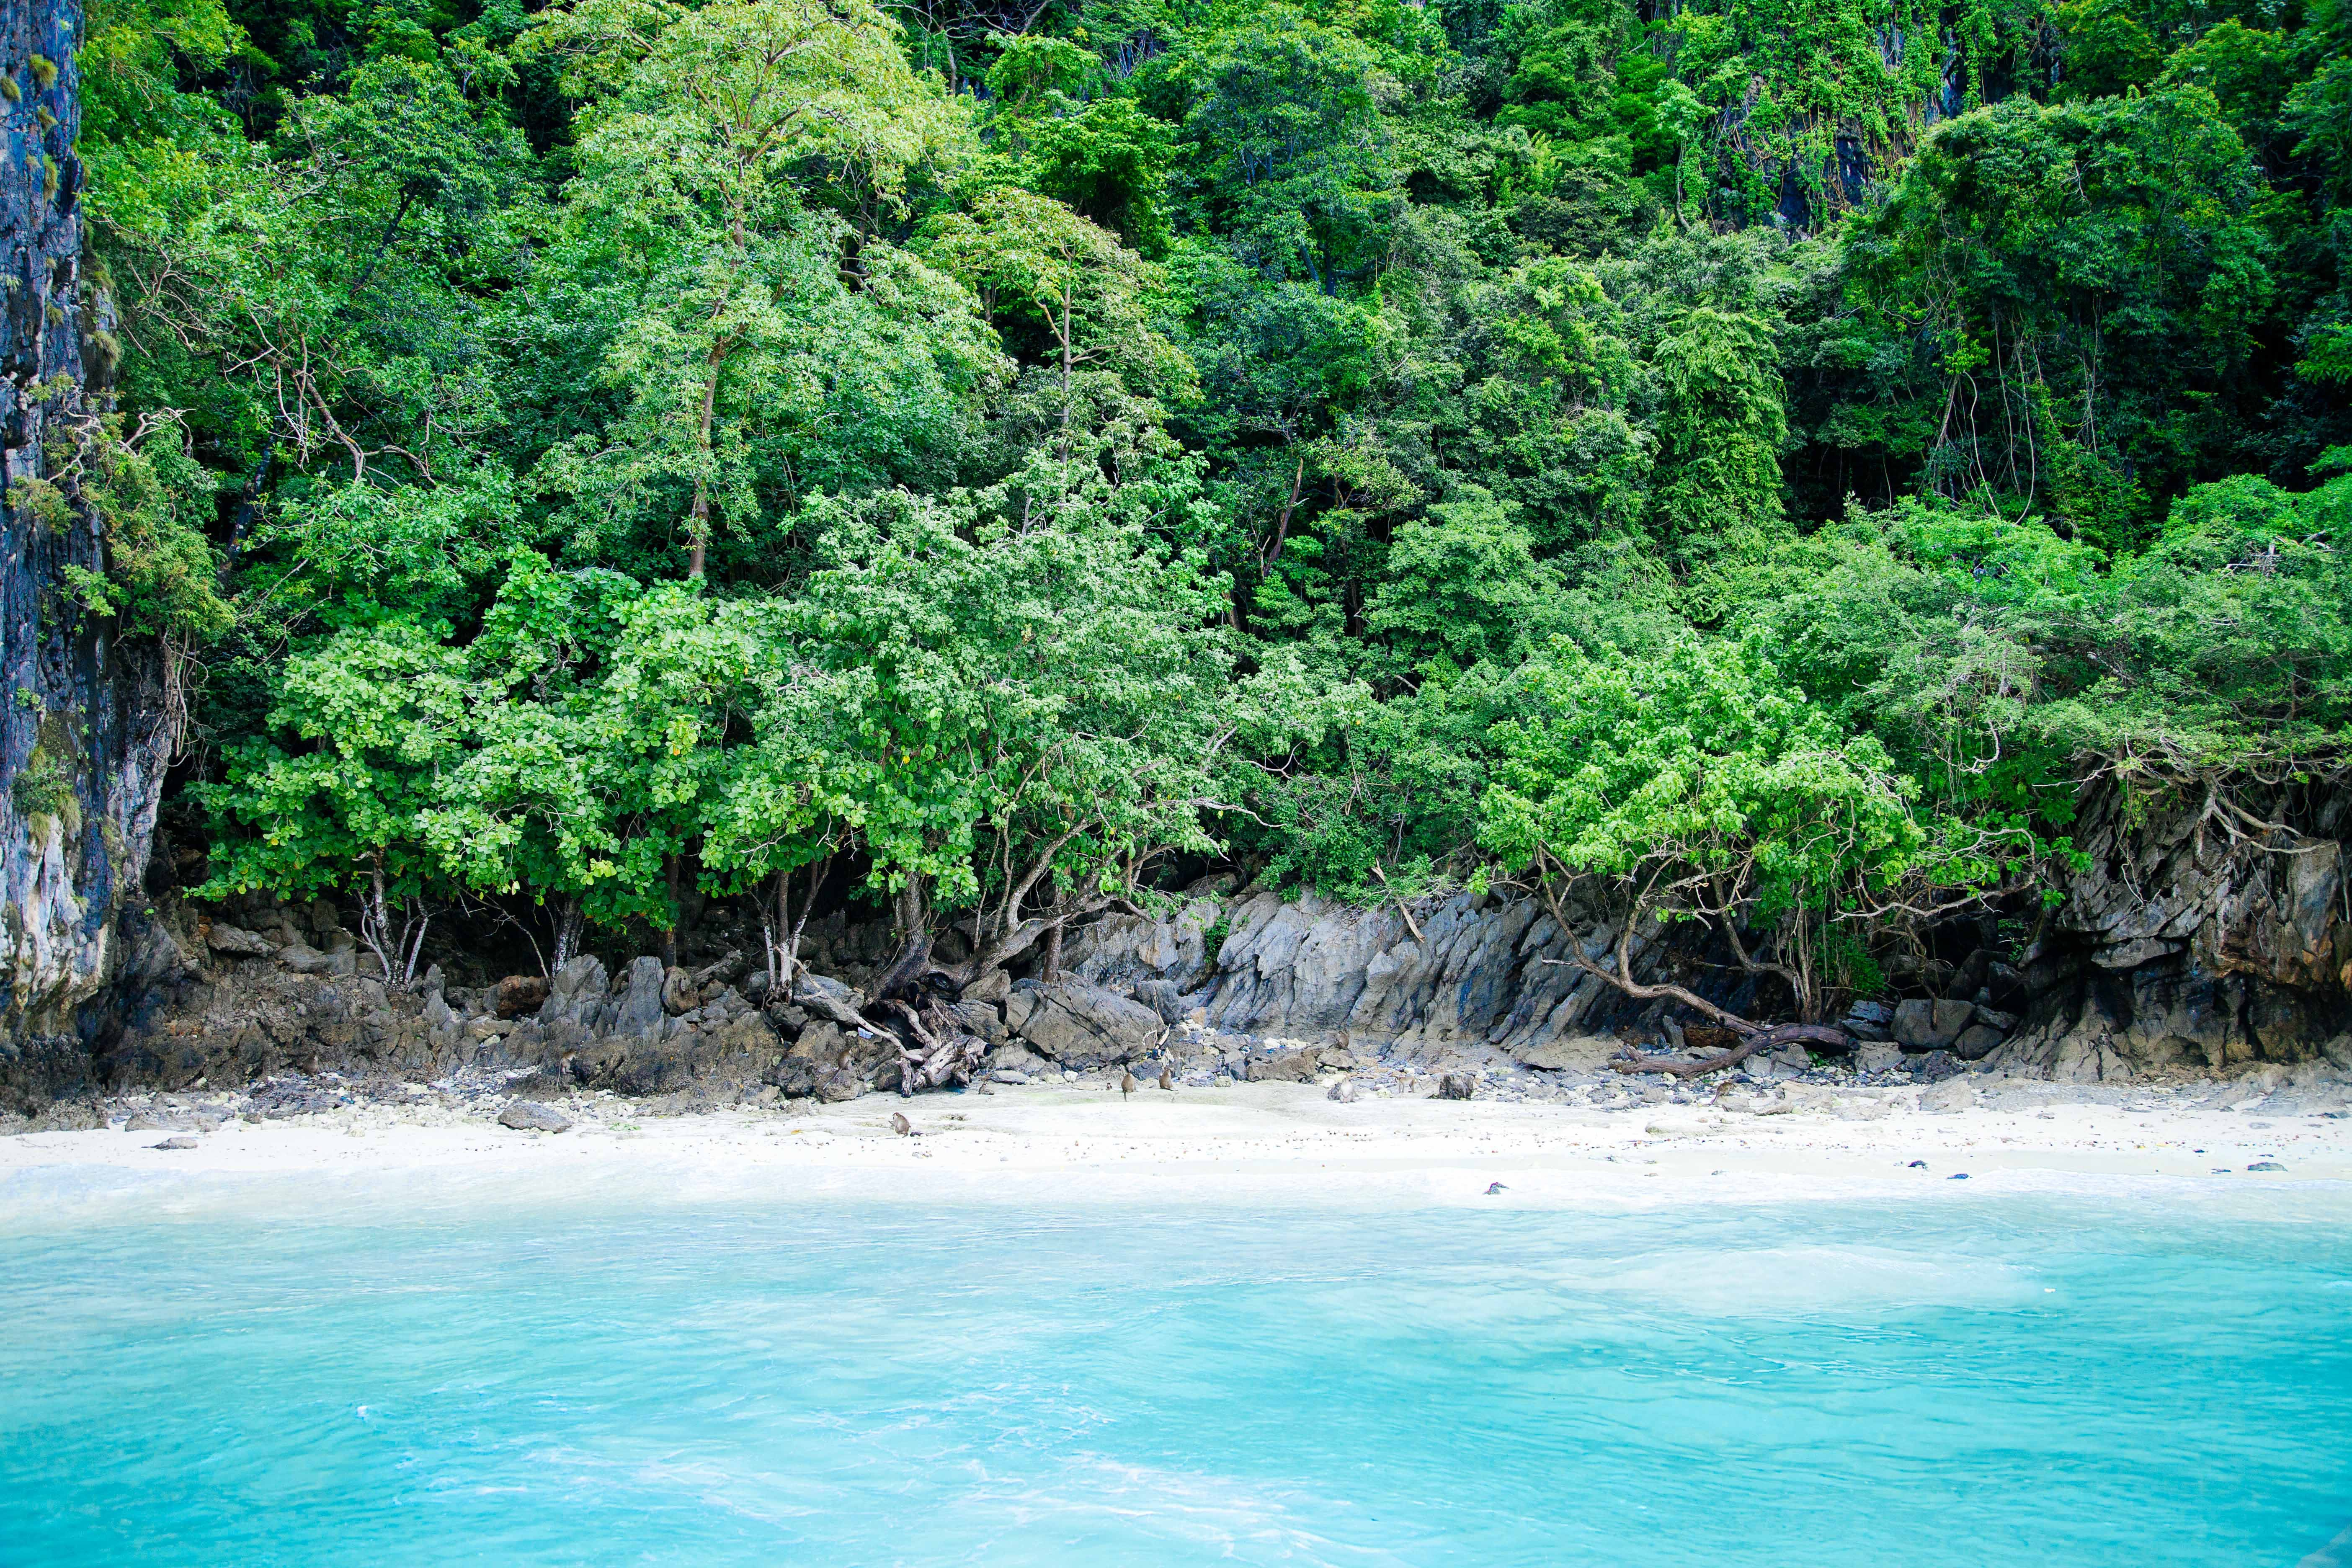 Azure sea water and a white sandy beach under a canopy of green trees